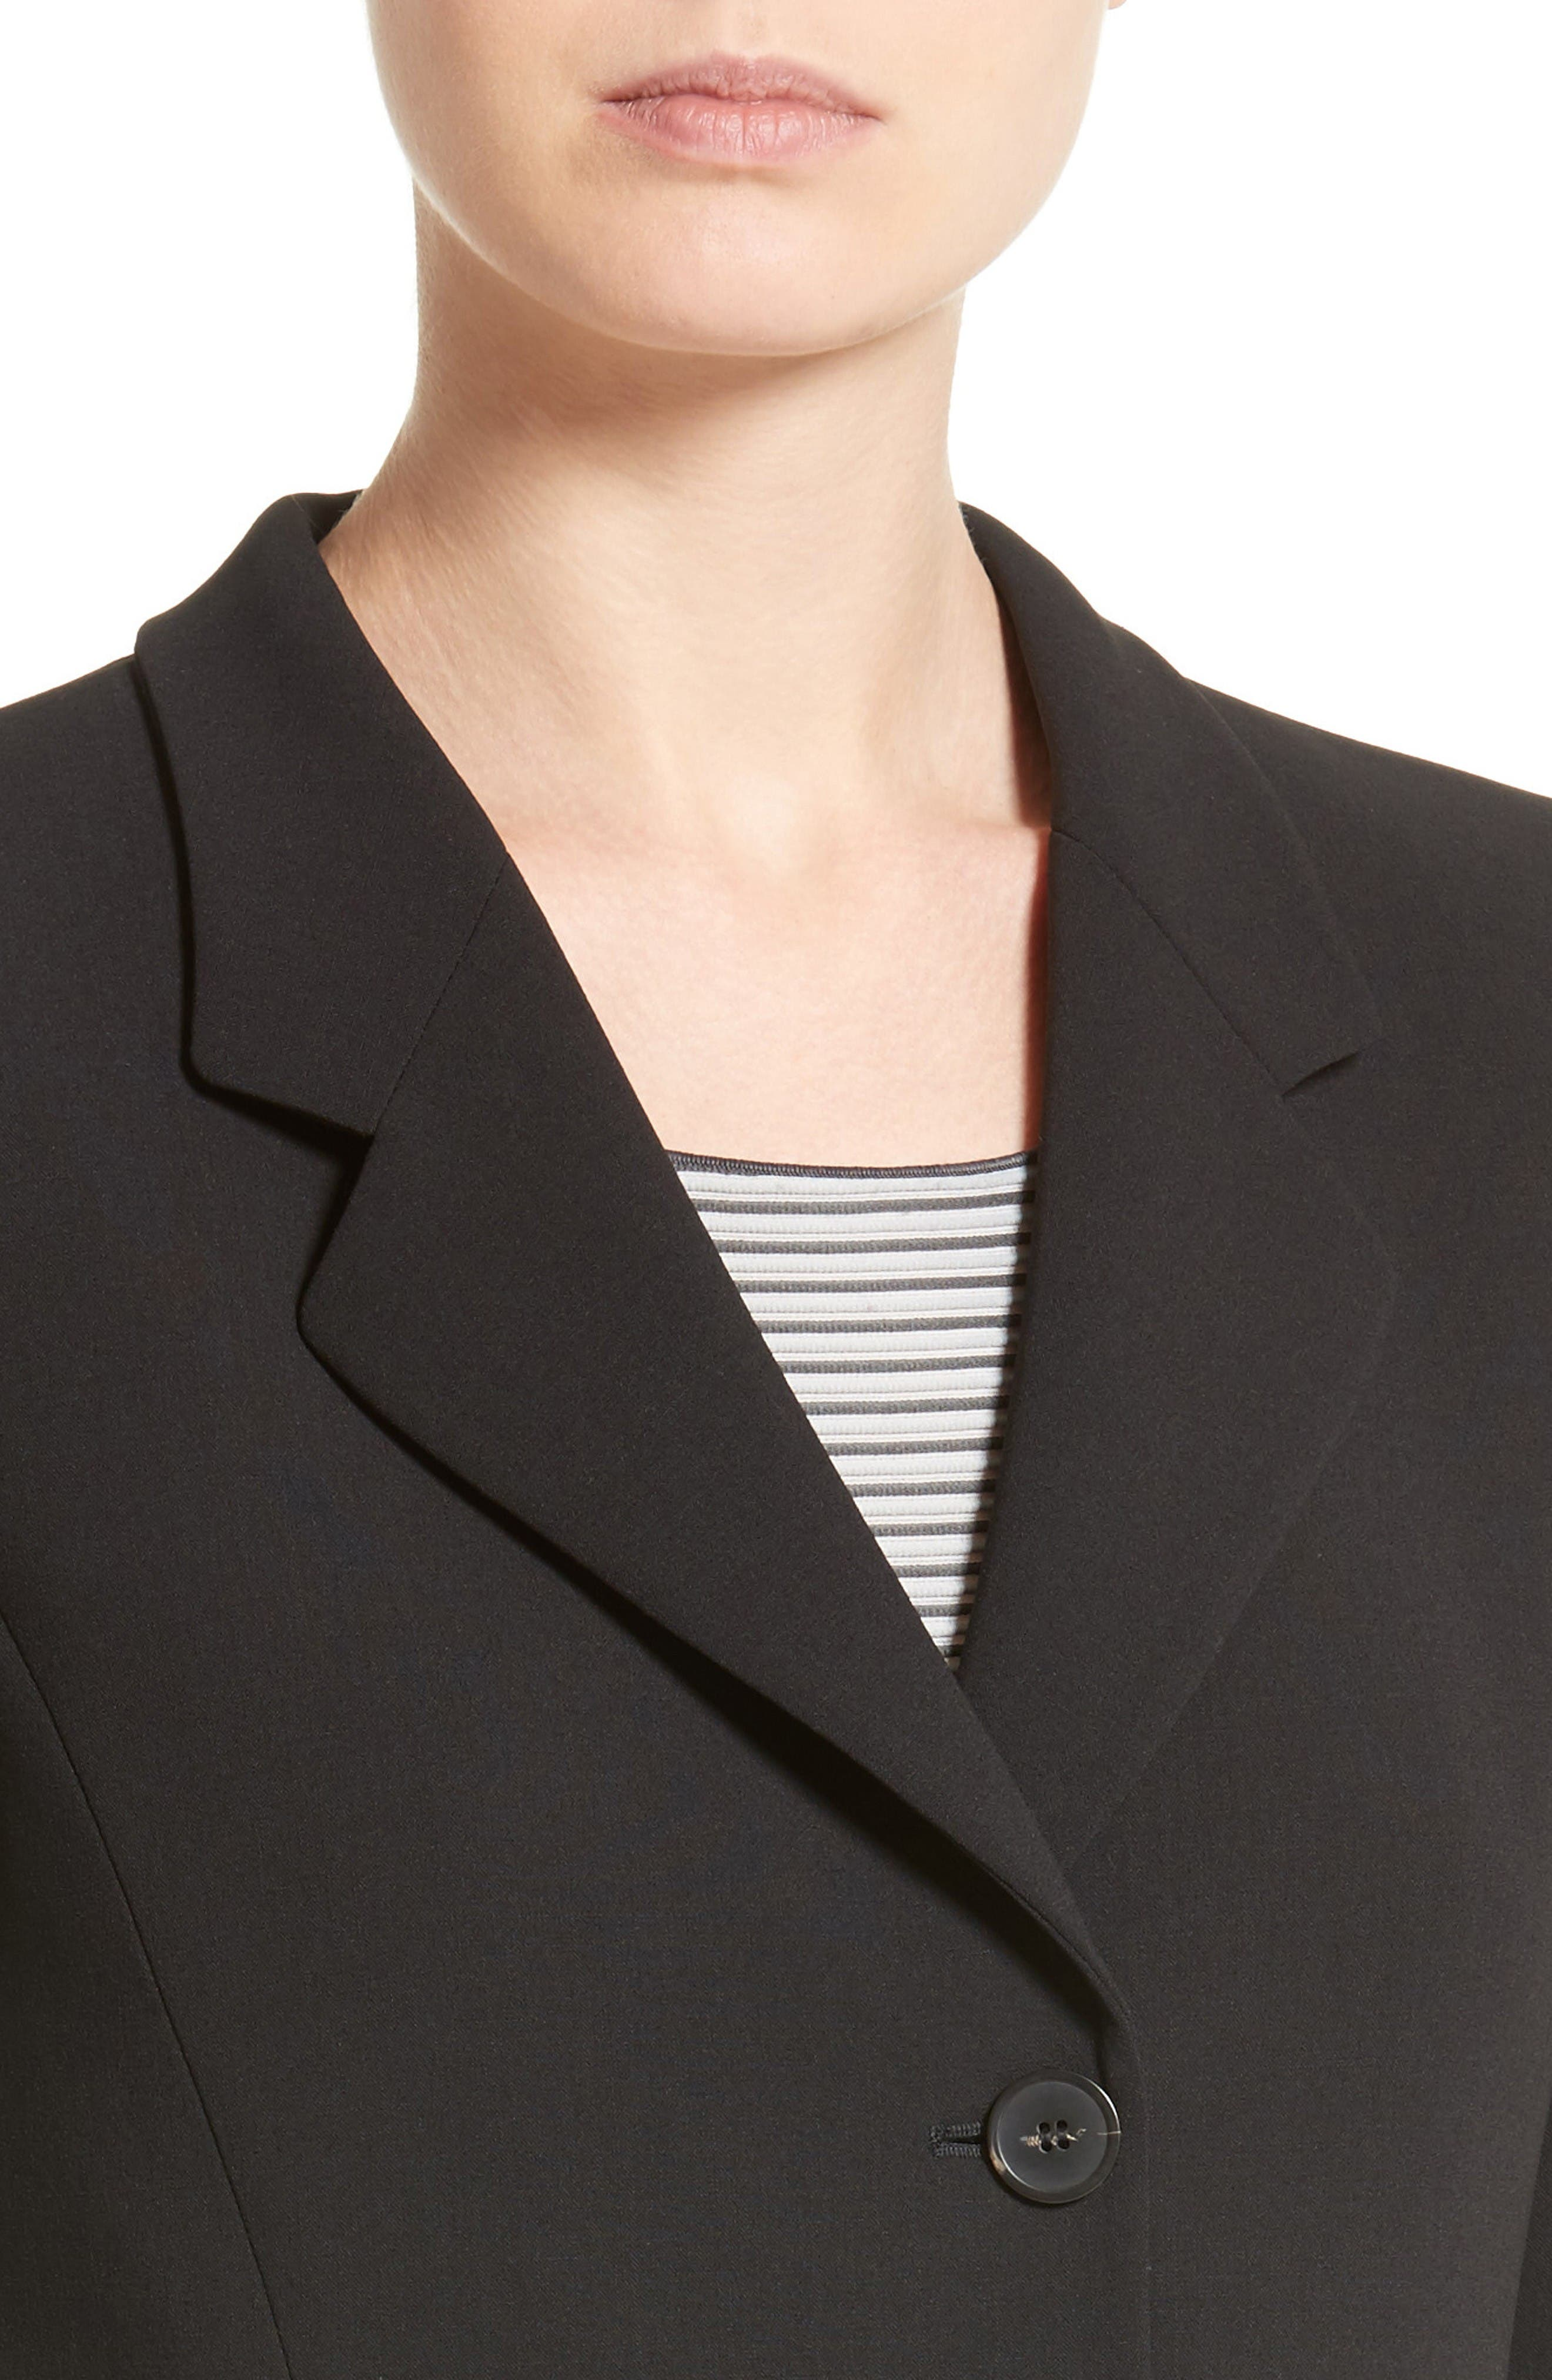 Stretch Wool Jacket,                             Alternate thumbnail 6, color,                             Black